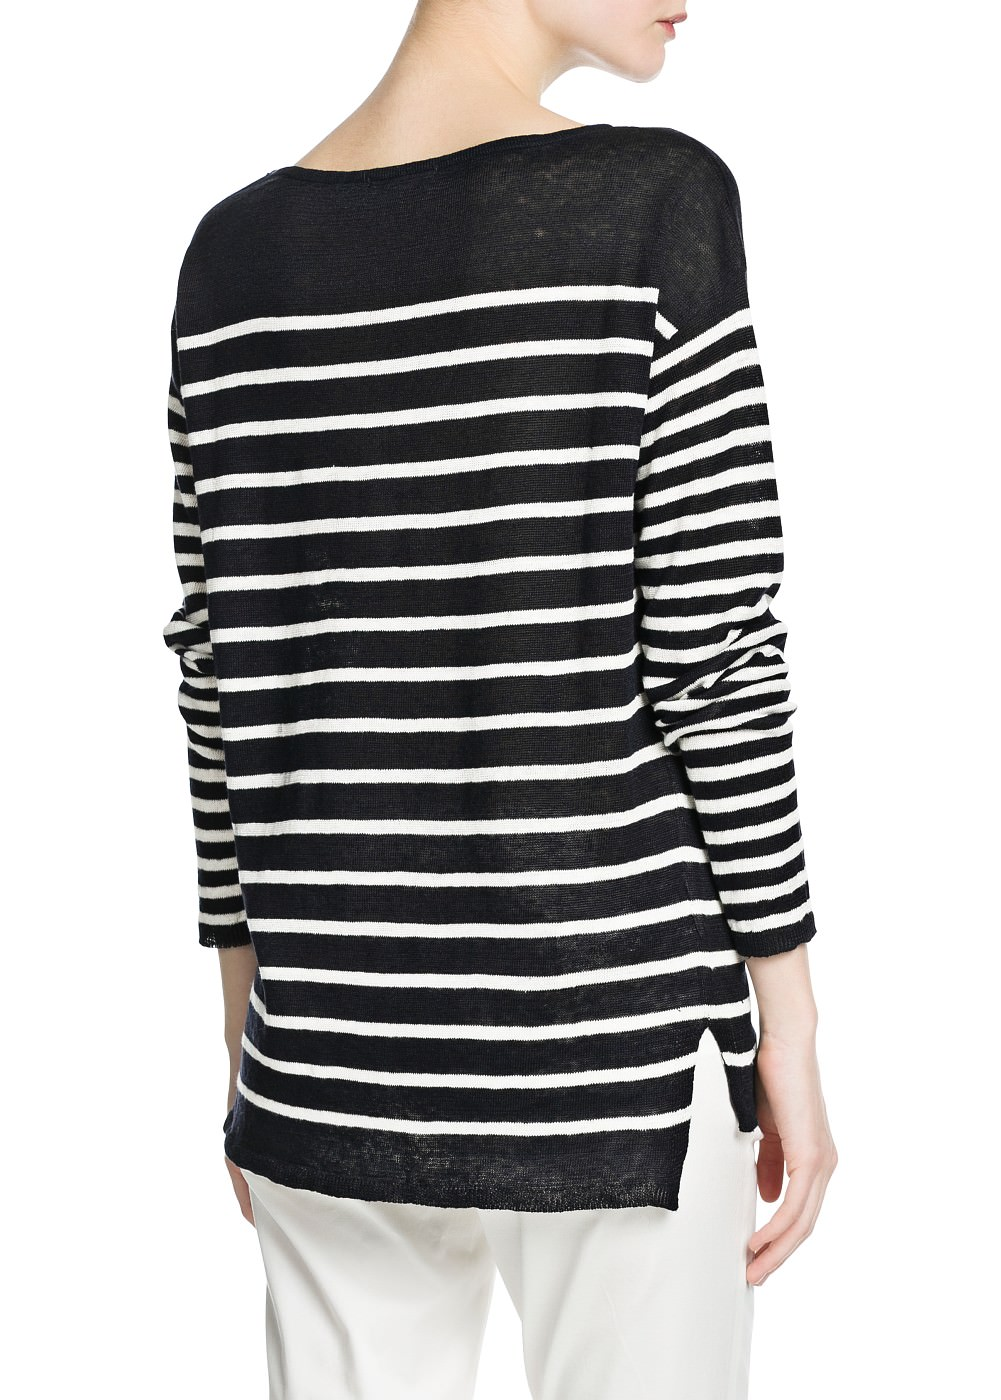 Striped linen sweater -  Cardigans and sweaters - Women - MANGO